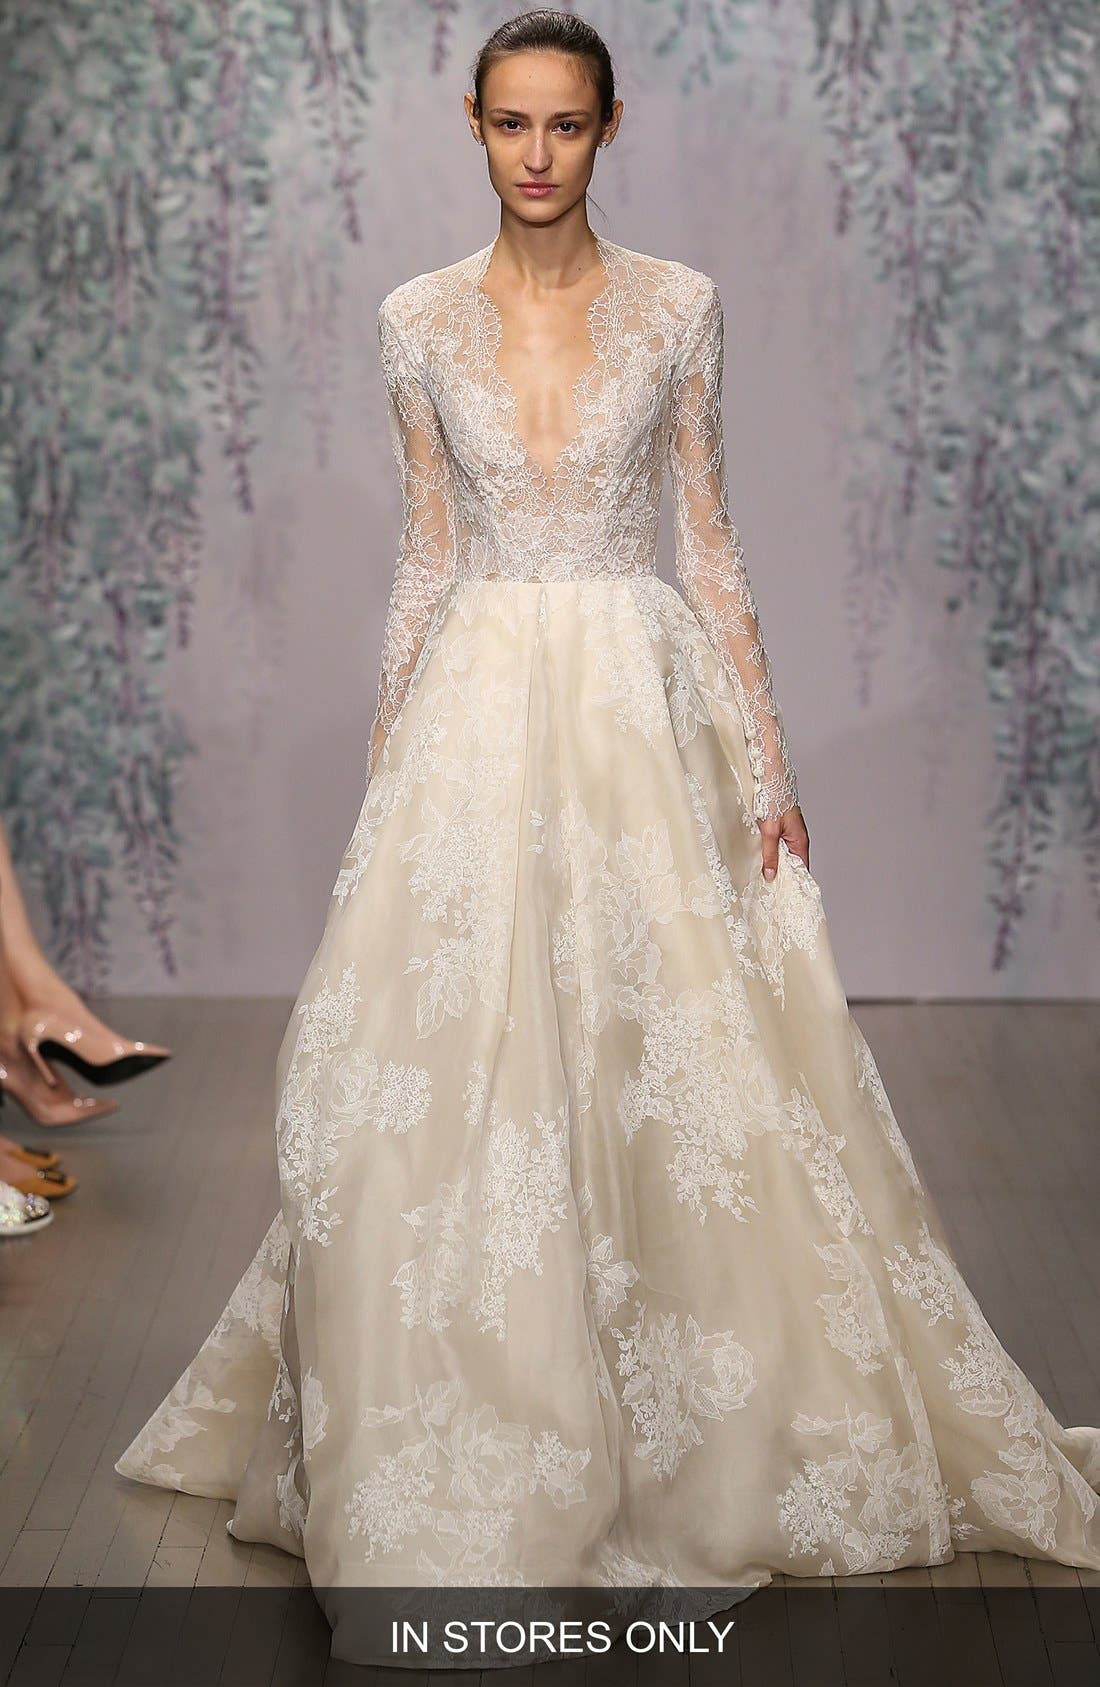 MONIQUE LHUILLIER 'Winslet' Plunging V-Neck Organza & Lace